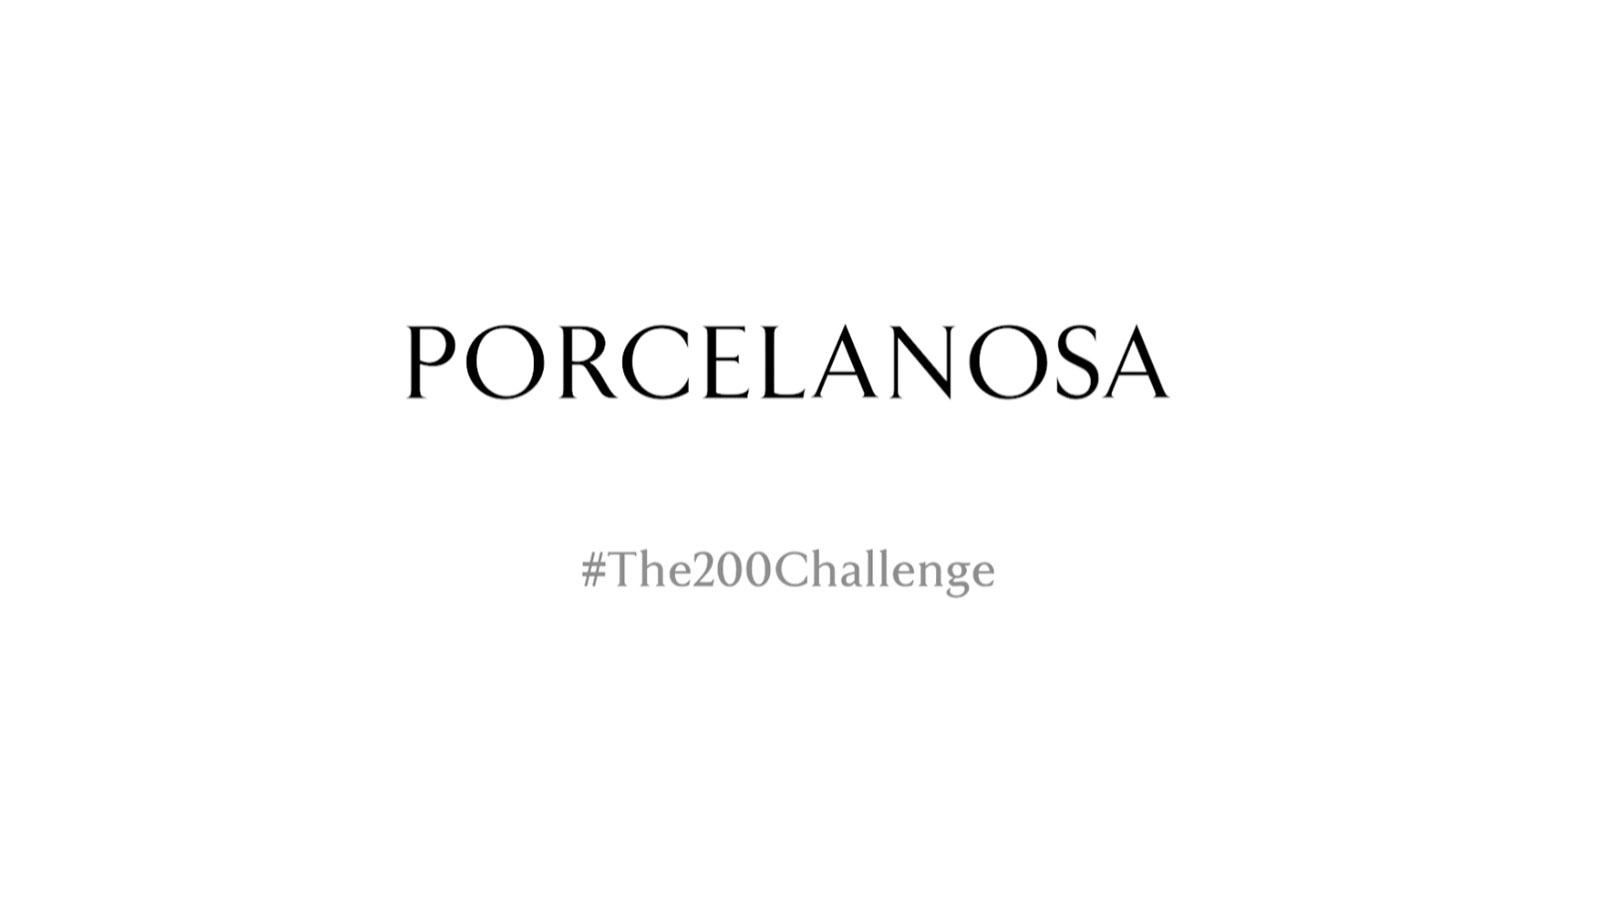 Porcelanosa changes its logo to support the fight against coronavirus